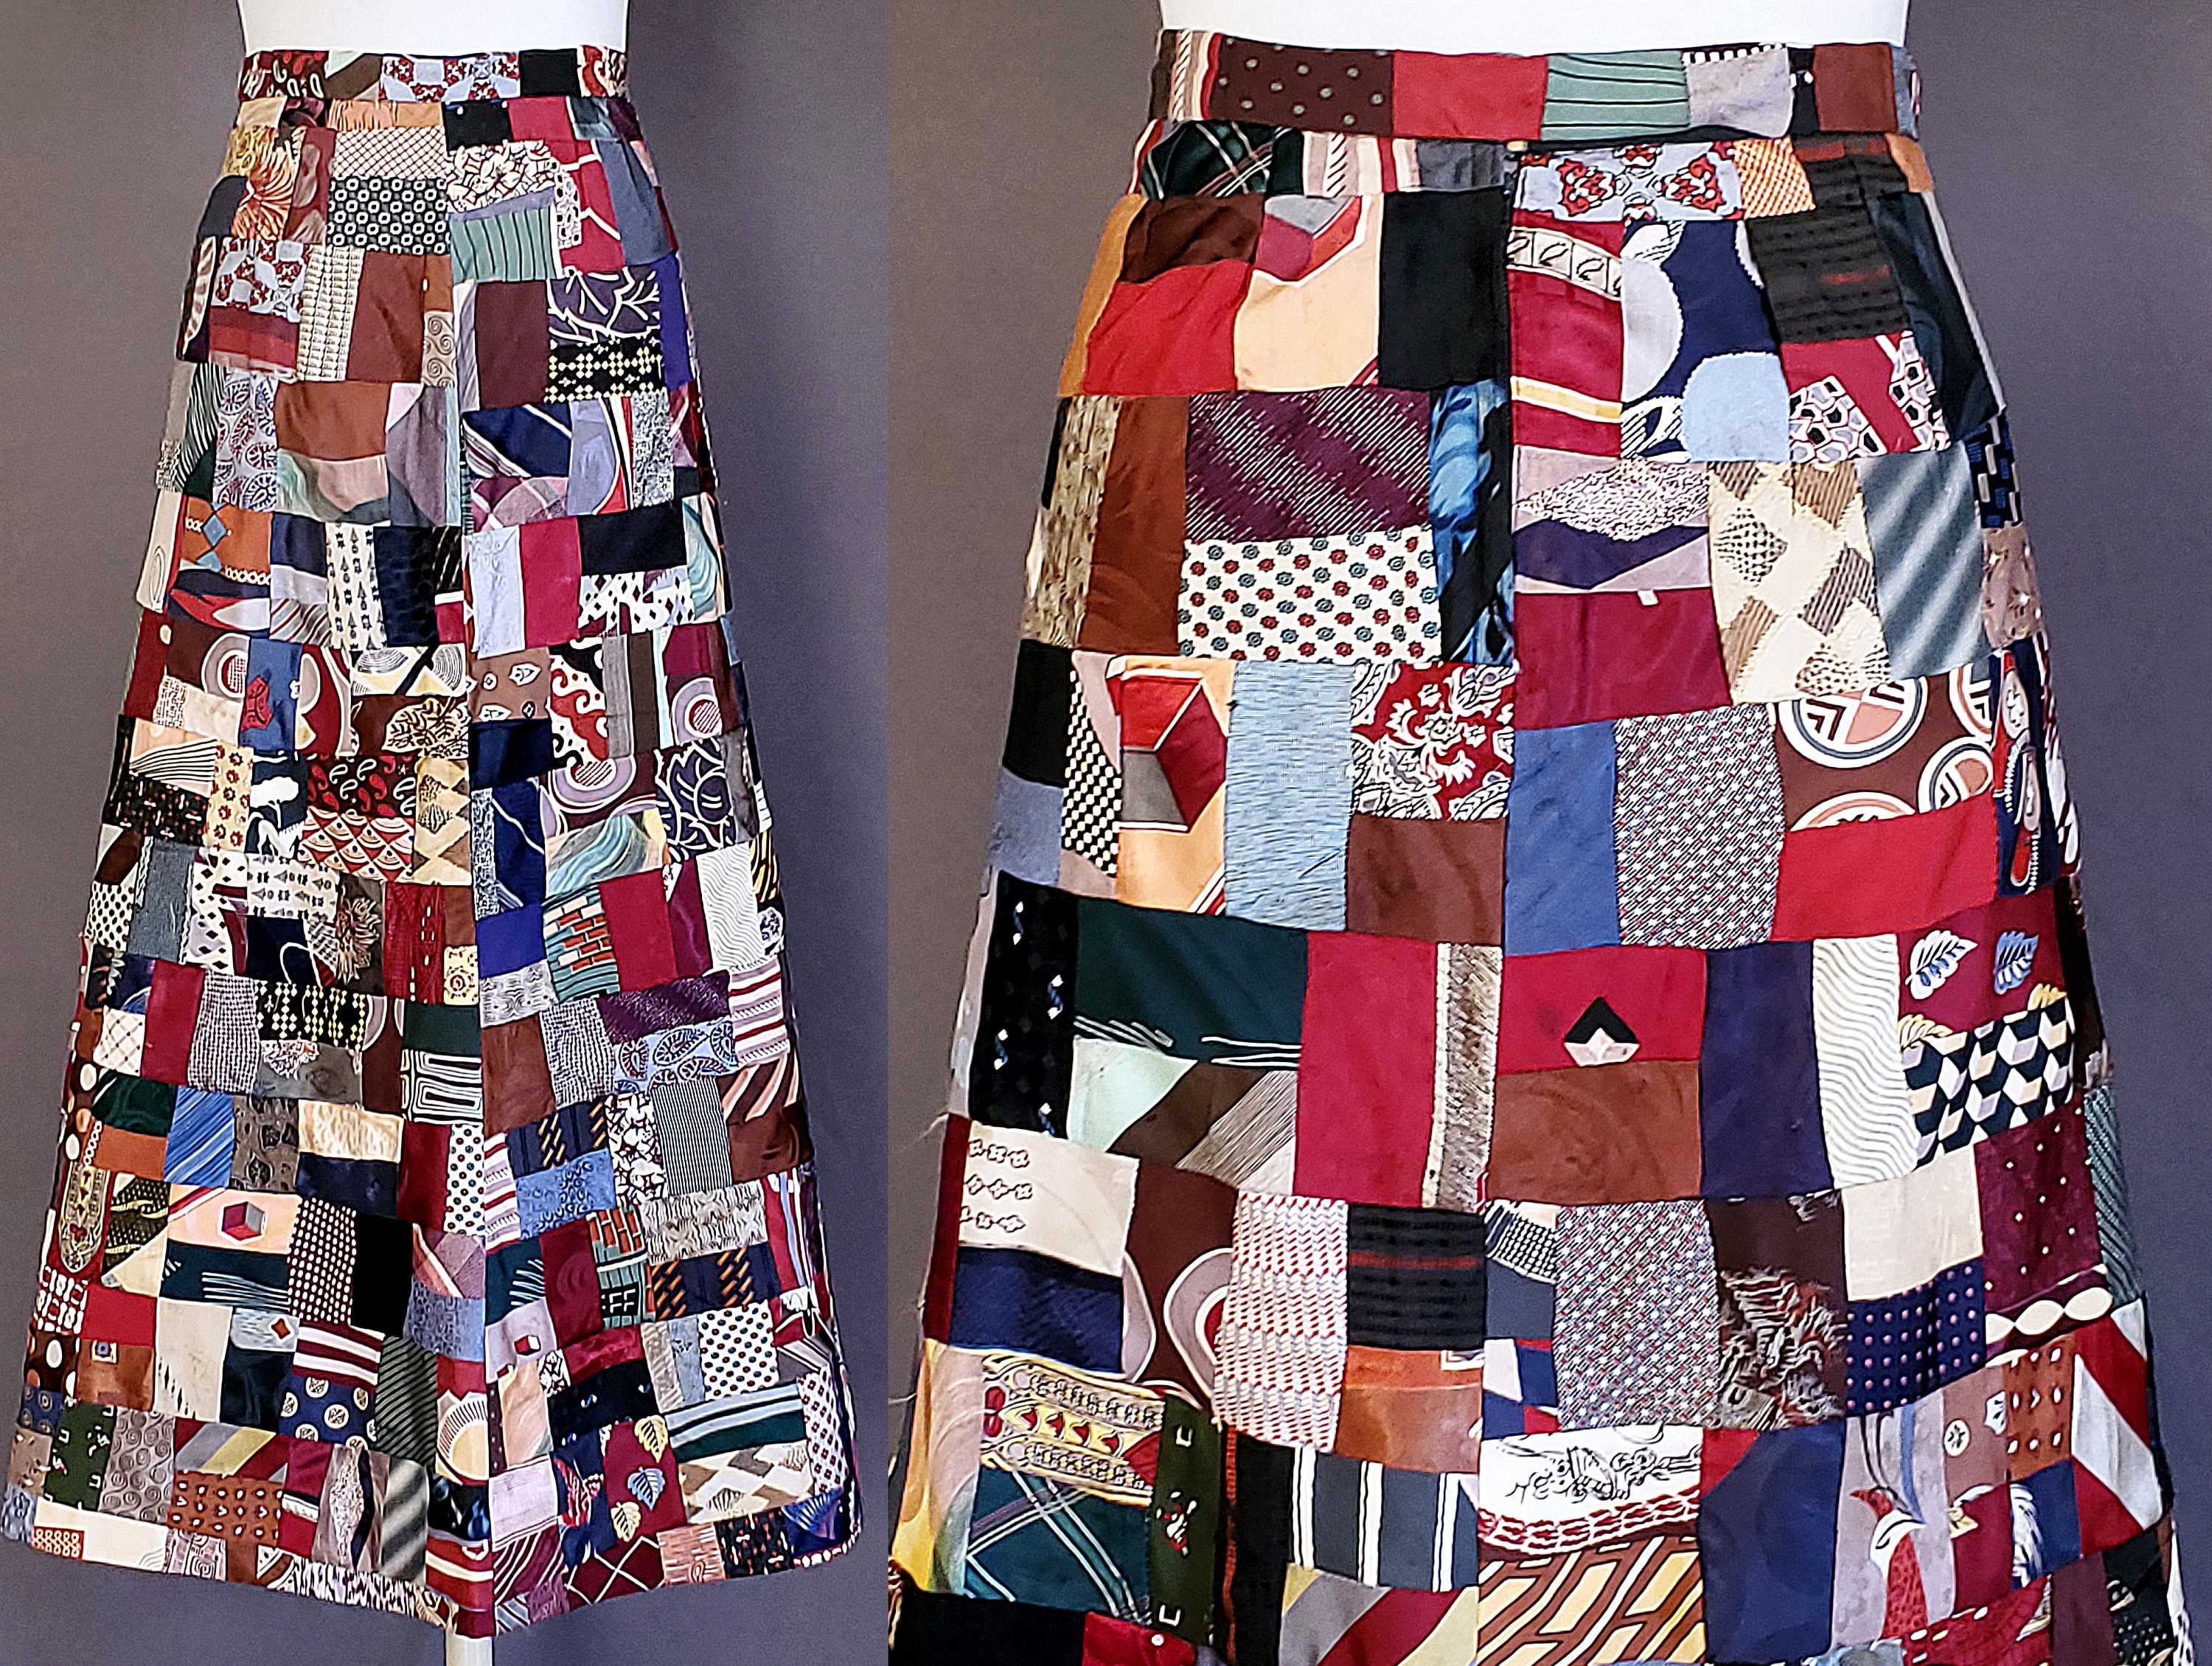 New 1930s Mens Fashion Ties 1970 70S Crazy Quilt Maxi Skirt M Medium Size 8 Waist 30 Vintage Patchwork Aline Made From 1920S 1930S Mens Silk Rayon Neck Ties $0.00 AT vintagedancer.com